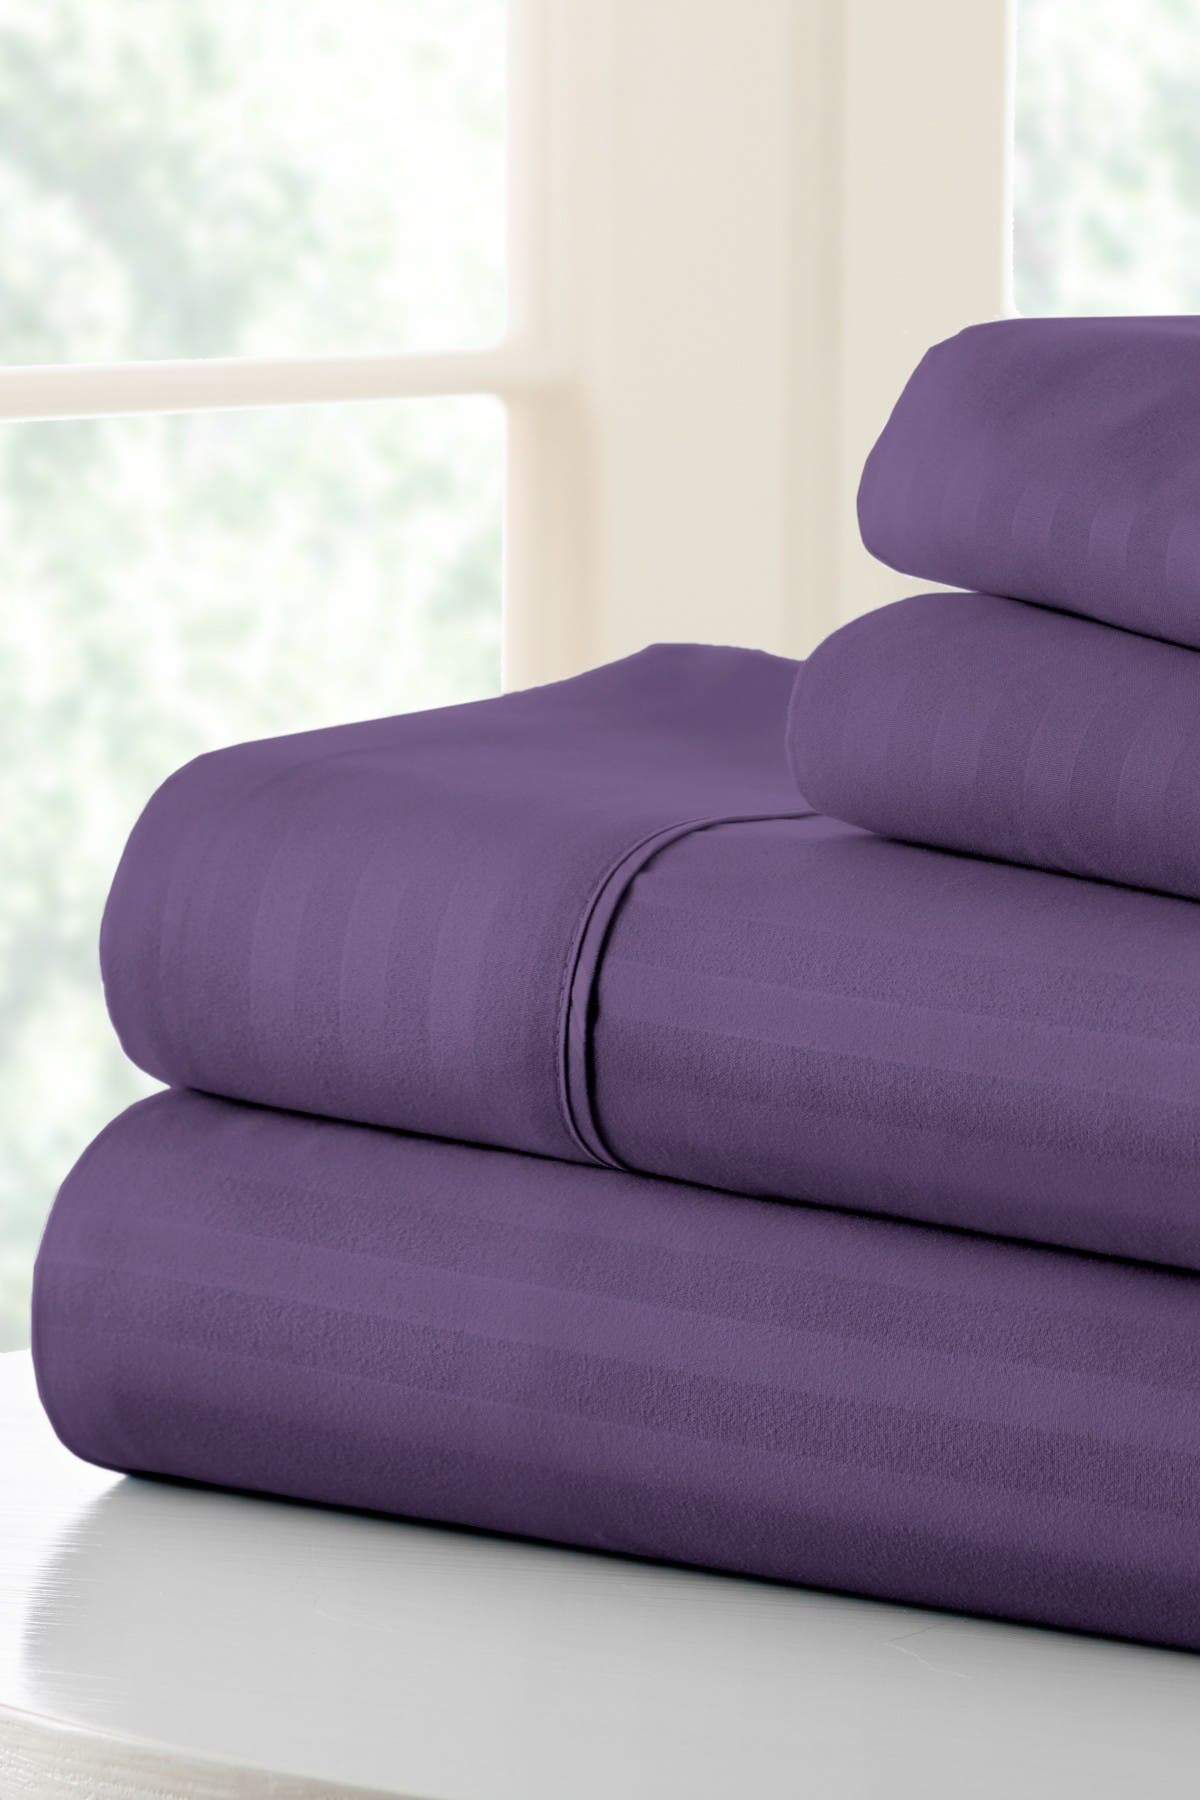 Image of IENJOY HOME Full Hotel Collection Premium Ultra Soft 4-Piece Striped Bed Sheet Set - Purple